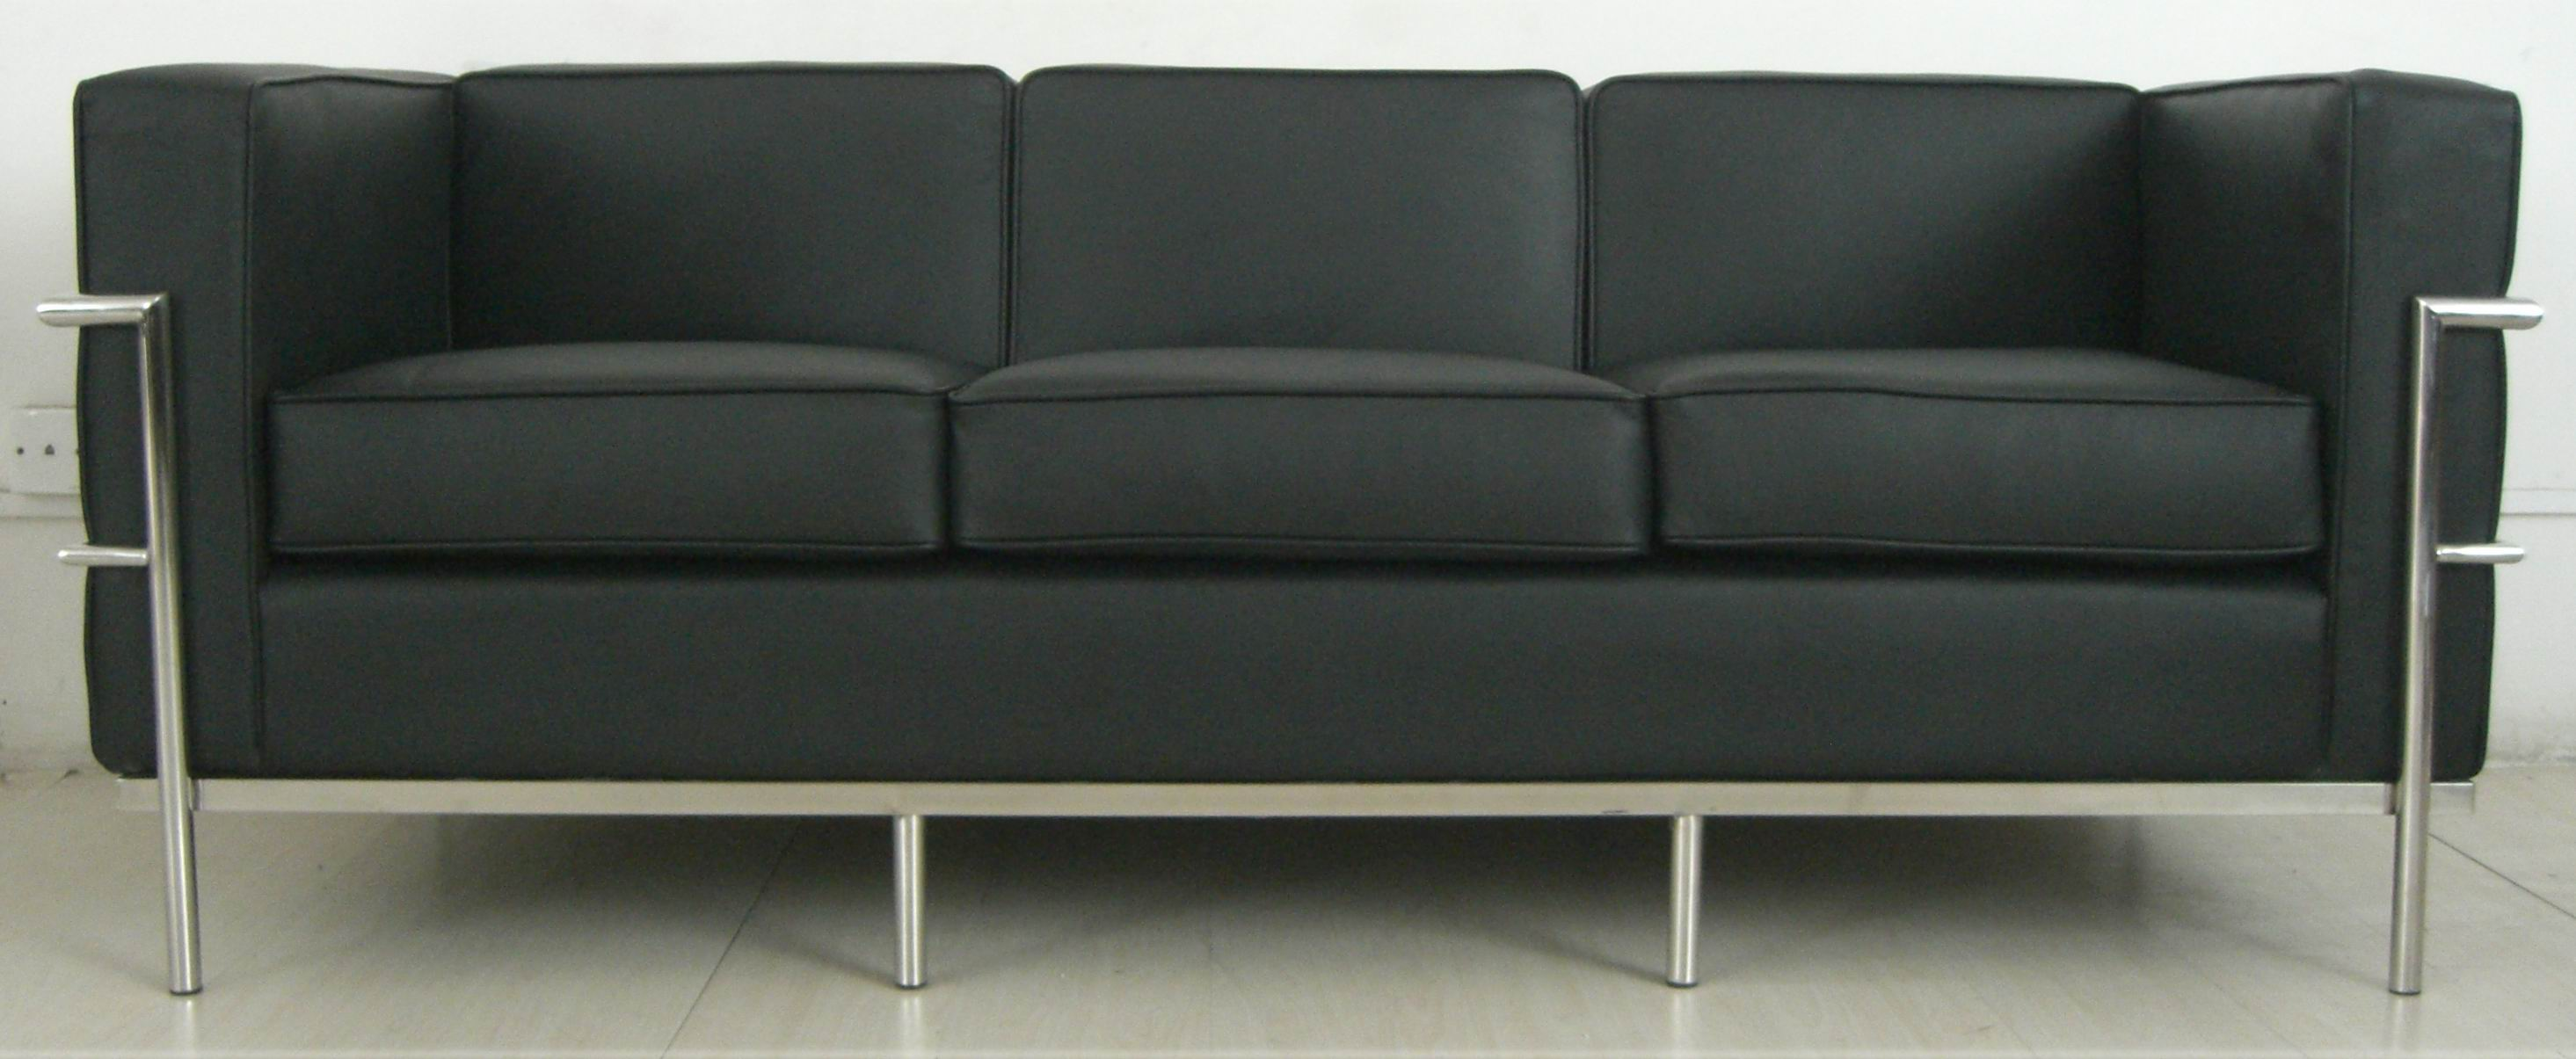 Leather-Sofa-Le-Corbusier-Sofa-LC2-  gATOS EN CASA. Muebles para gatos. Gatos y decoracion